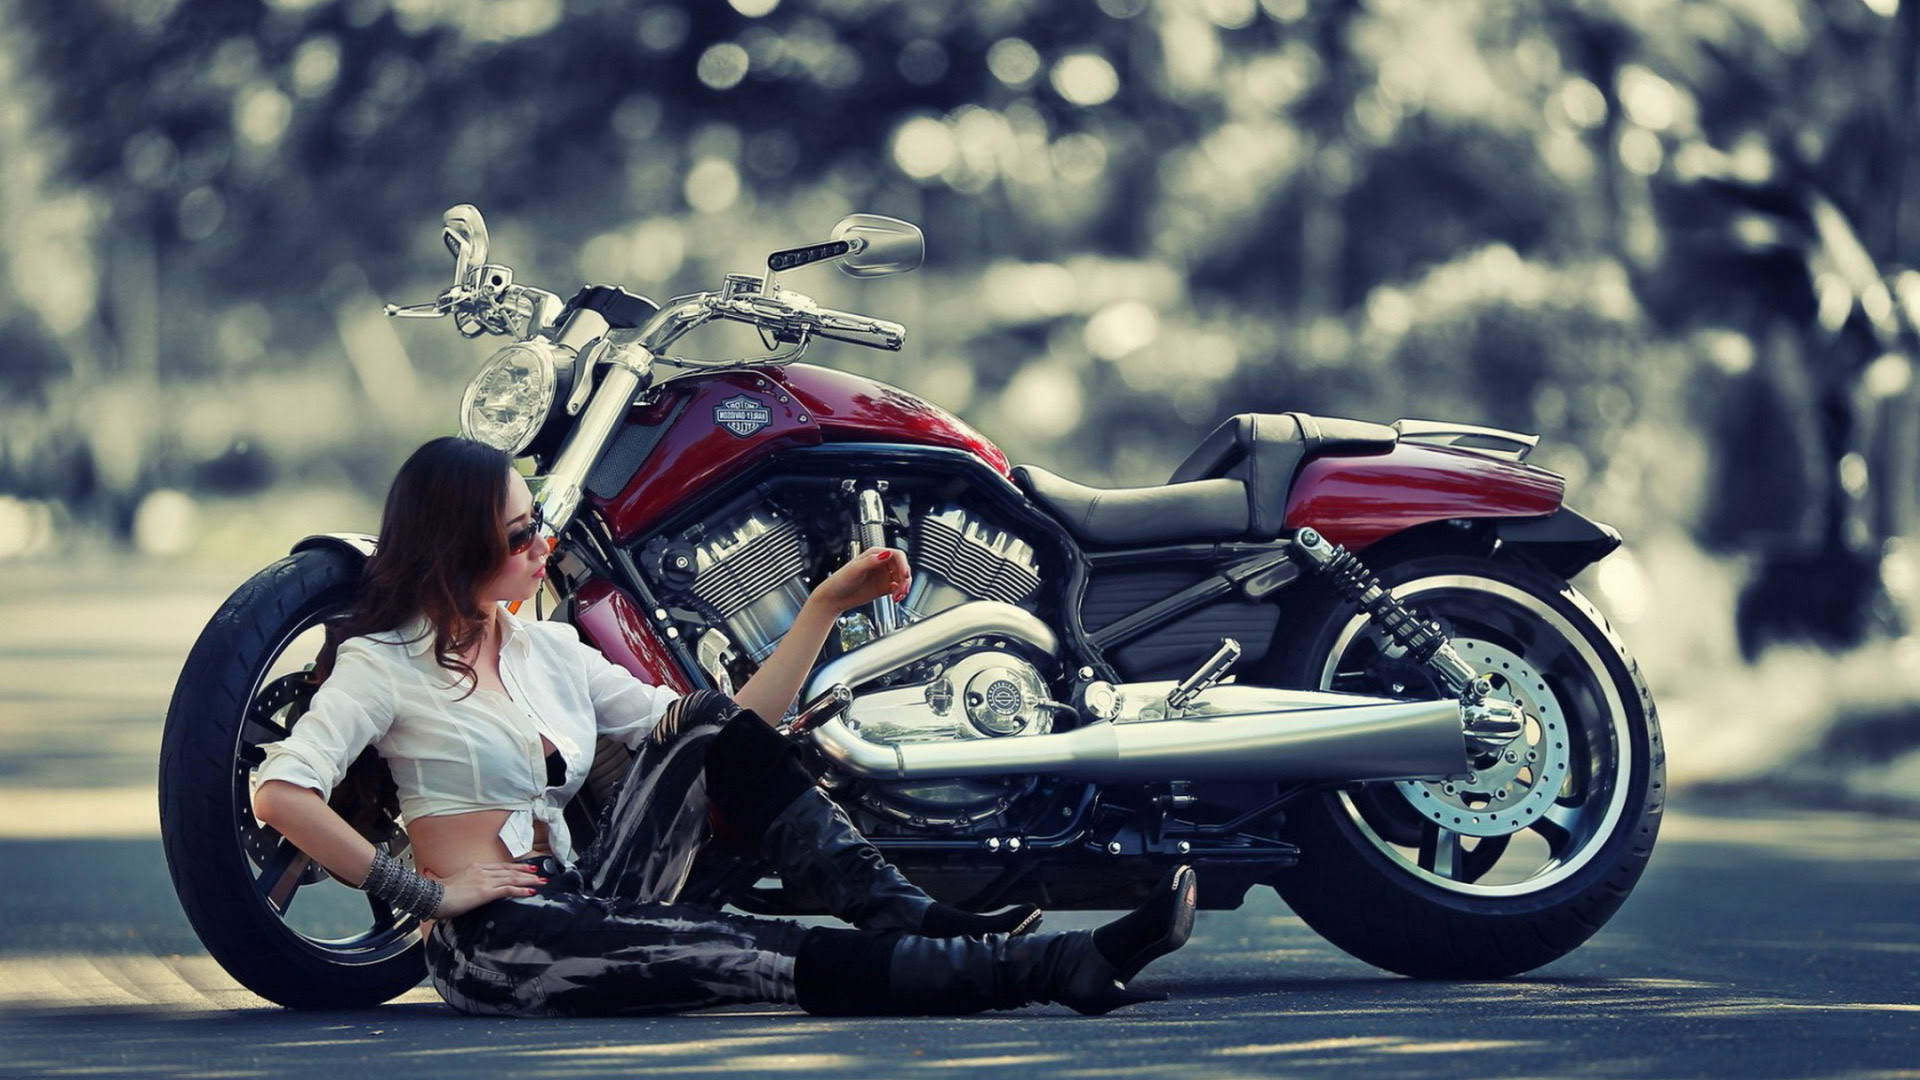 Harley Wallpapers 79 Images